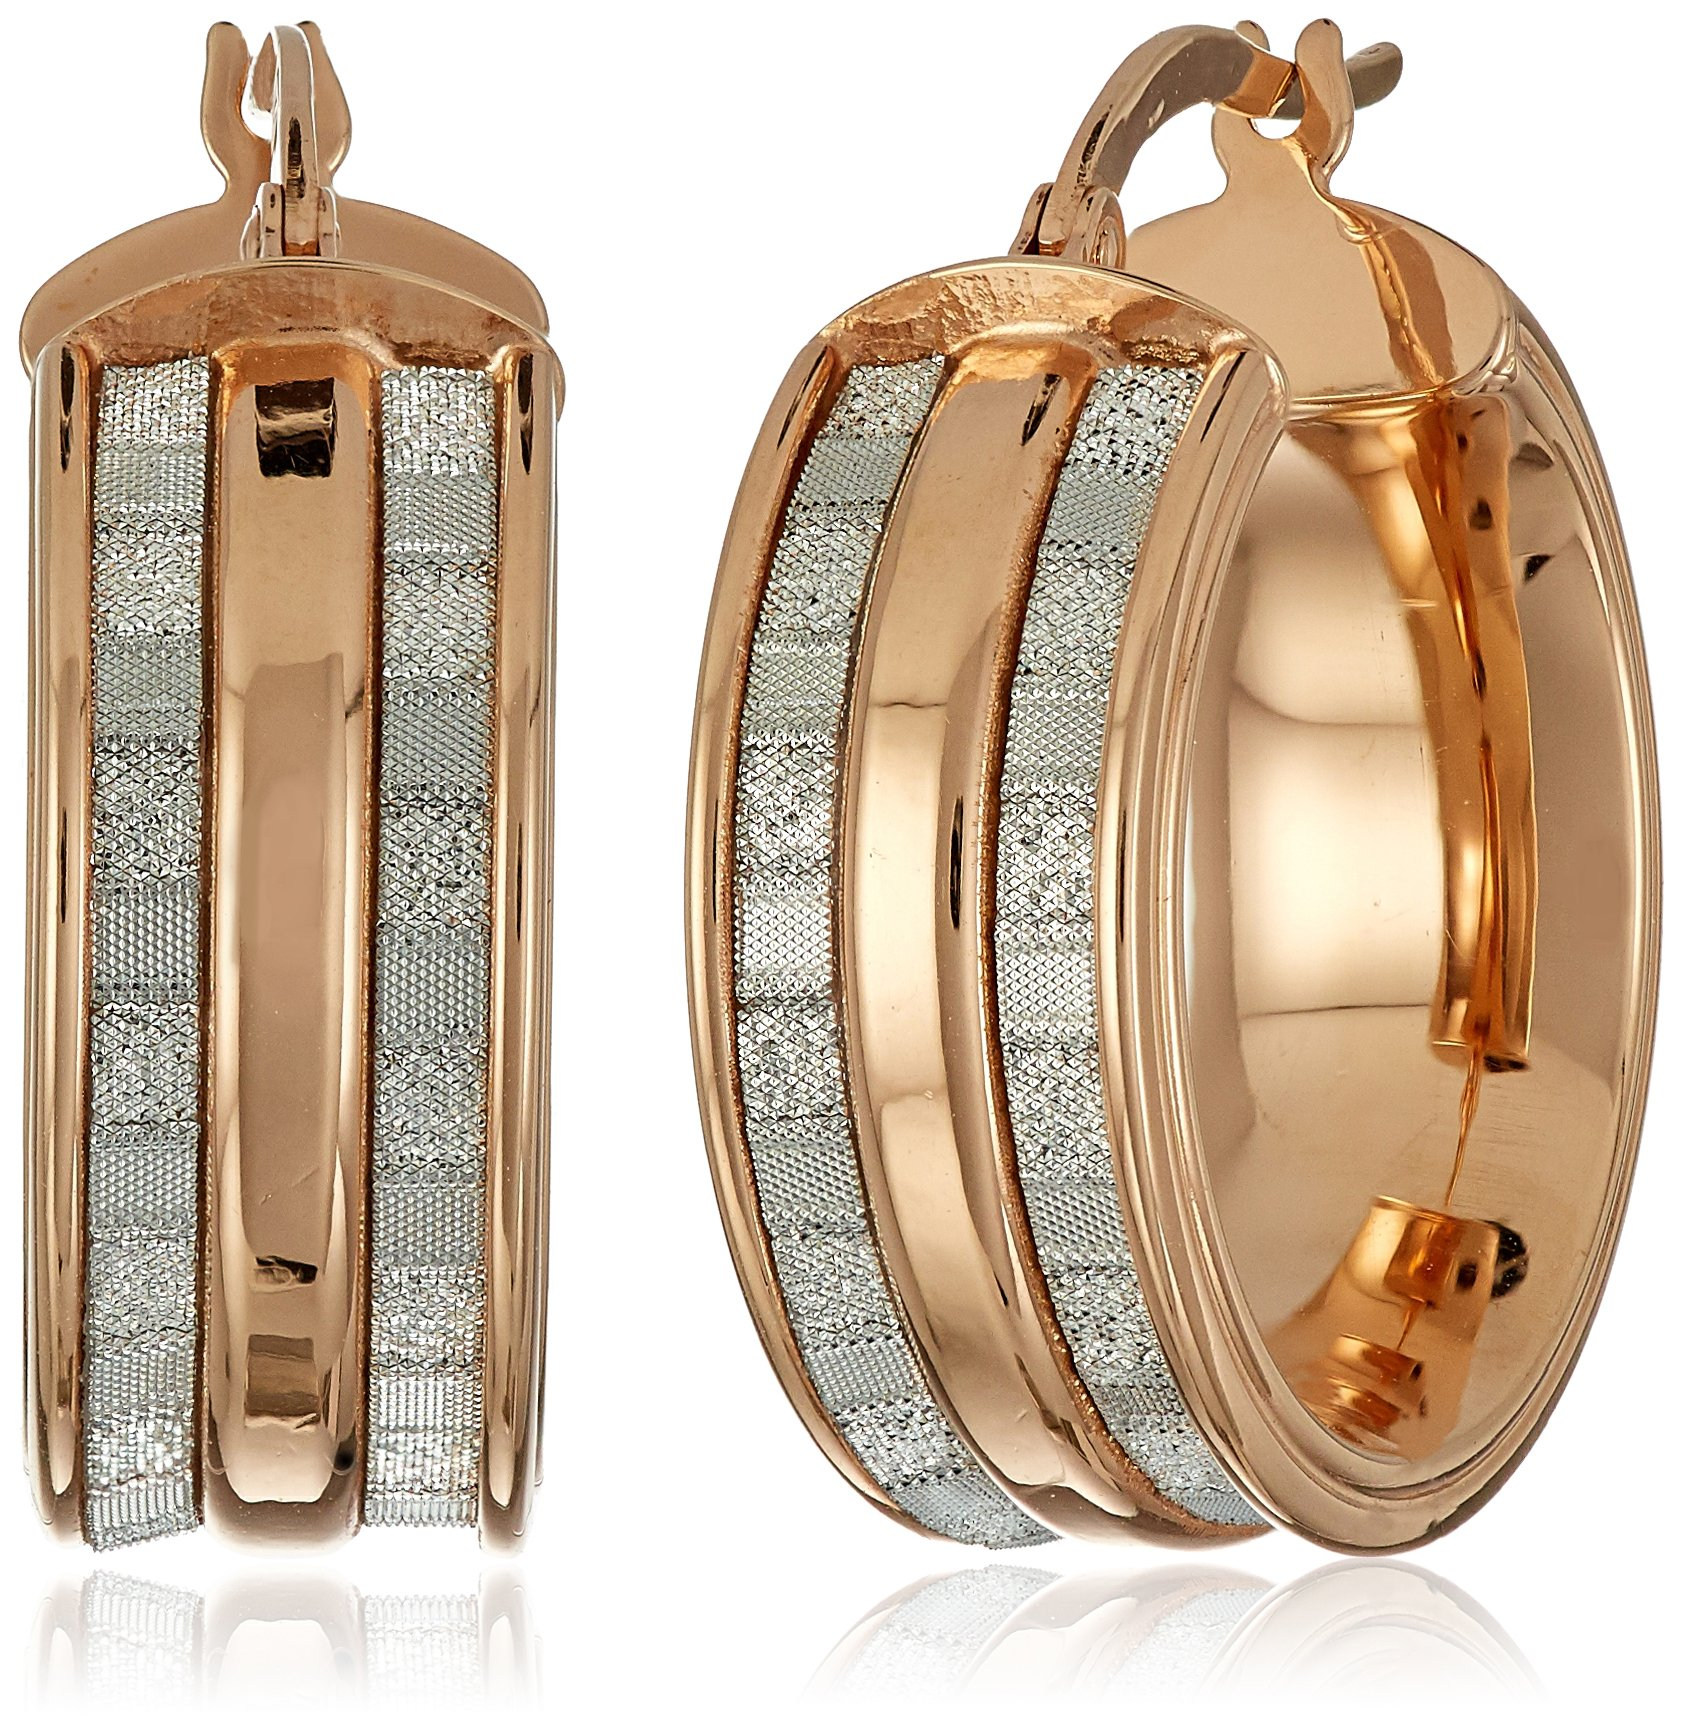 14k Rose Gold Italian Wide Hoop Earrings with Dual Baguette Style Glitter Strips Hoop Earrings by Amazon Collection